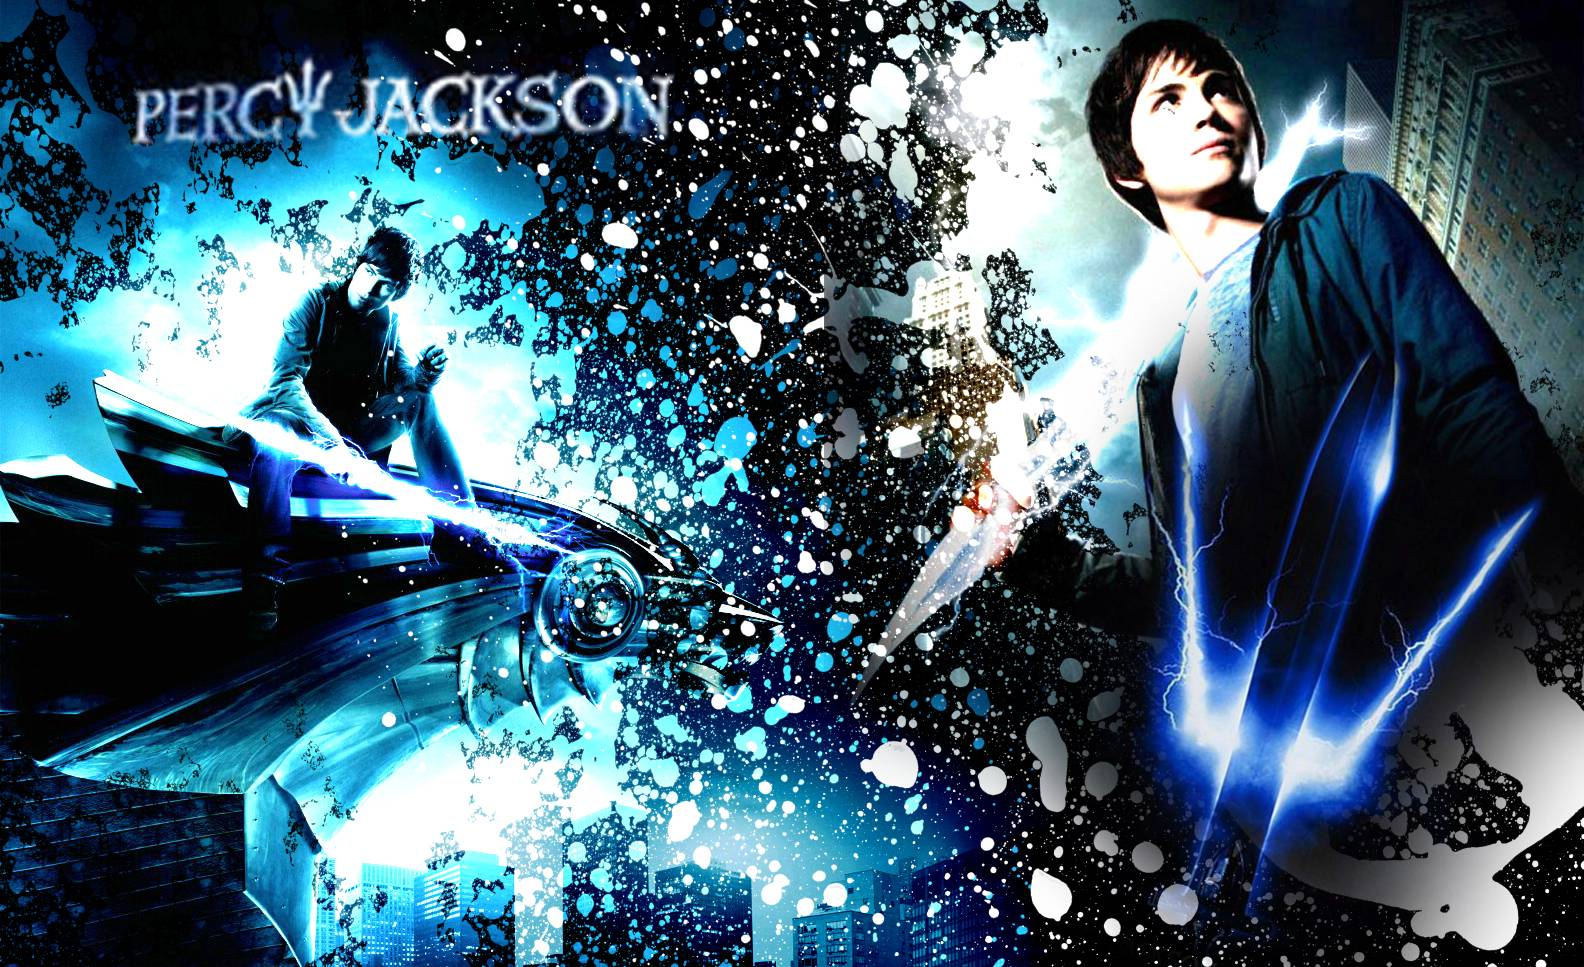 Percy jackson wallpapers wallpaper cave pix for percy jackson the last olympian wallpaper voltagebd Image collections